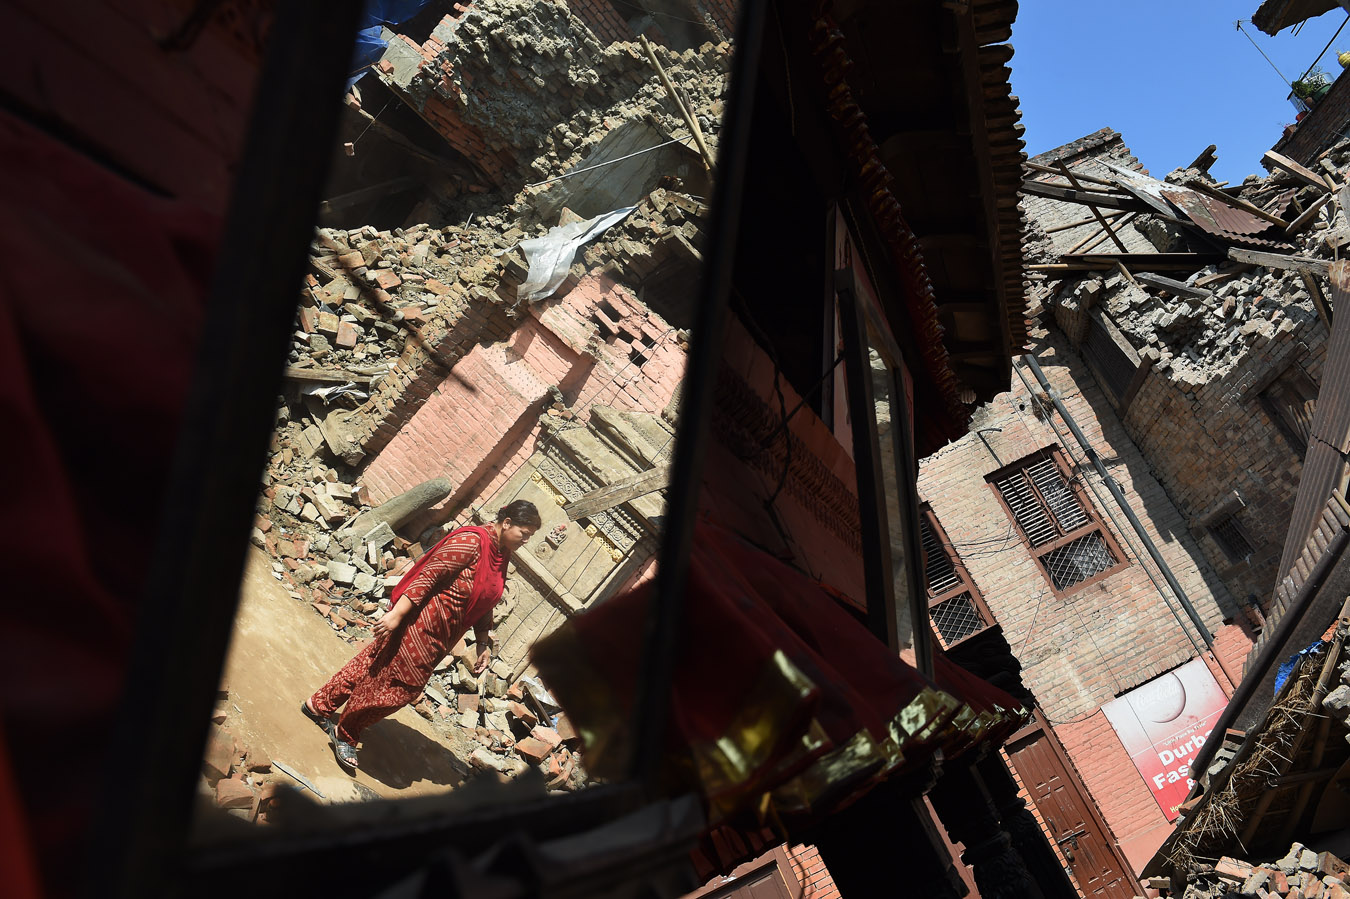 A woman is reflected in a mirror as she walks near Bhaktapur Durbar Square on Saturday May 02, 2015 in Bhaktapur, Nepal. A deadly earthquake in Nepal has killed thousands. (Photo by Matt McClain/ The Washington Post)